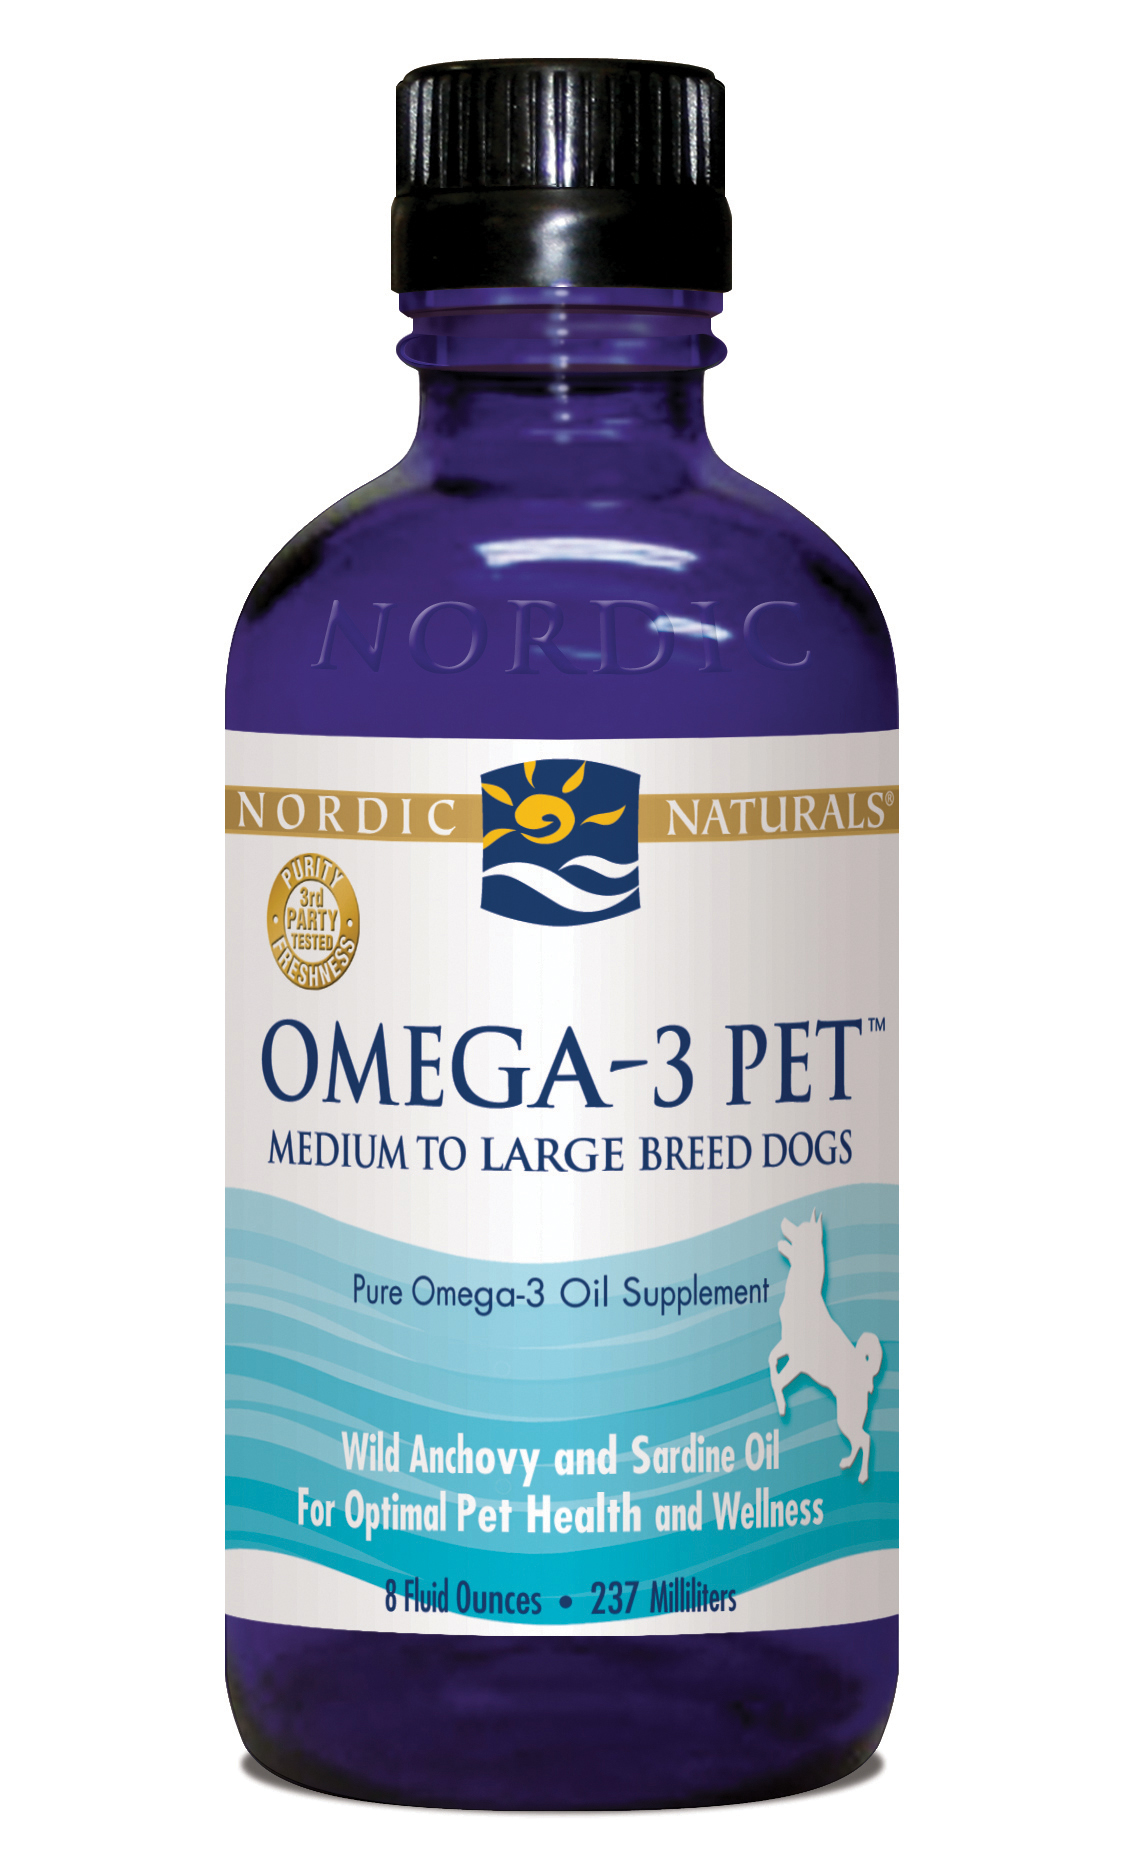 Omega-3 Pet by Nordic Naturals